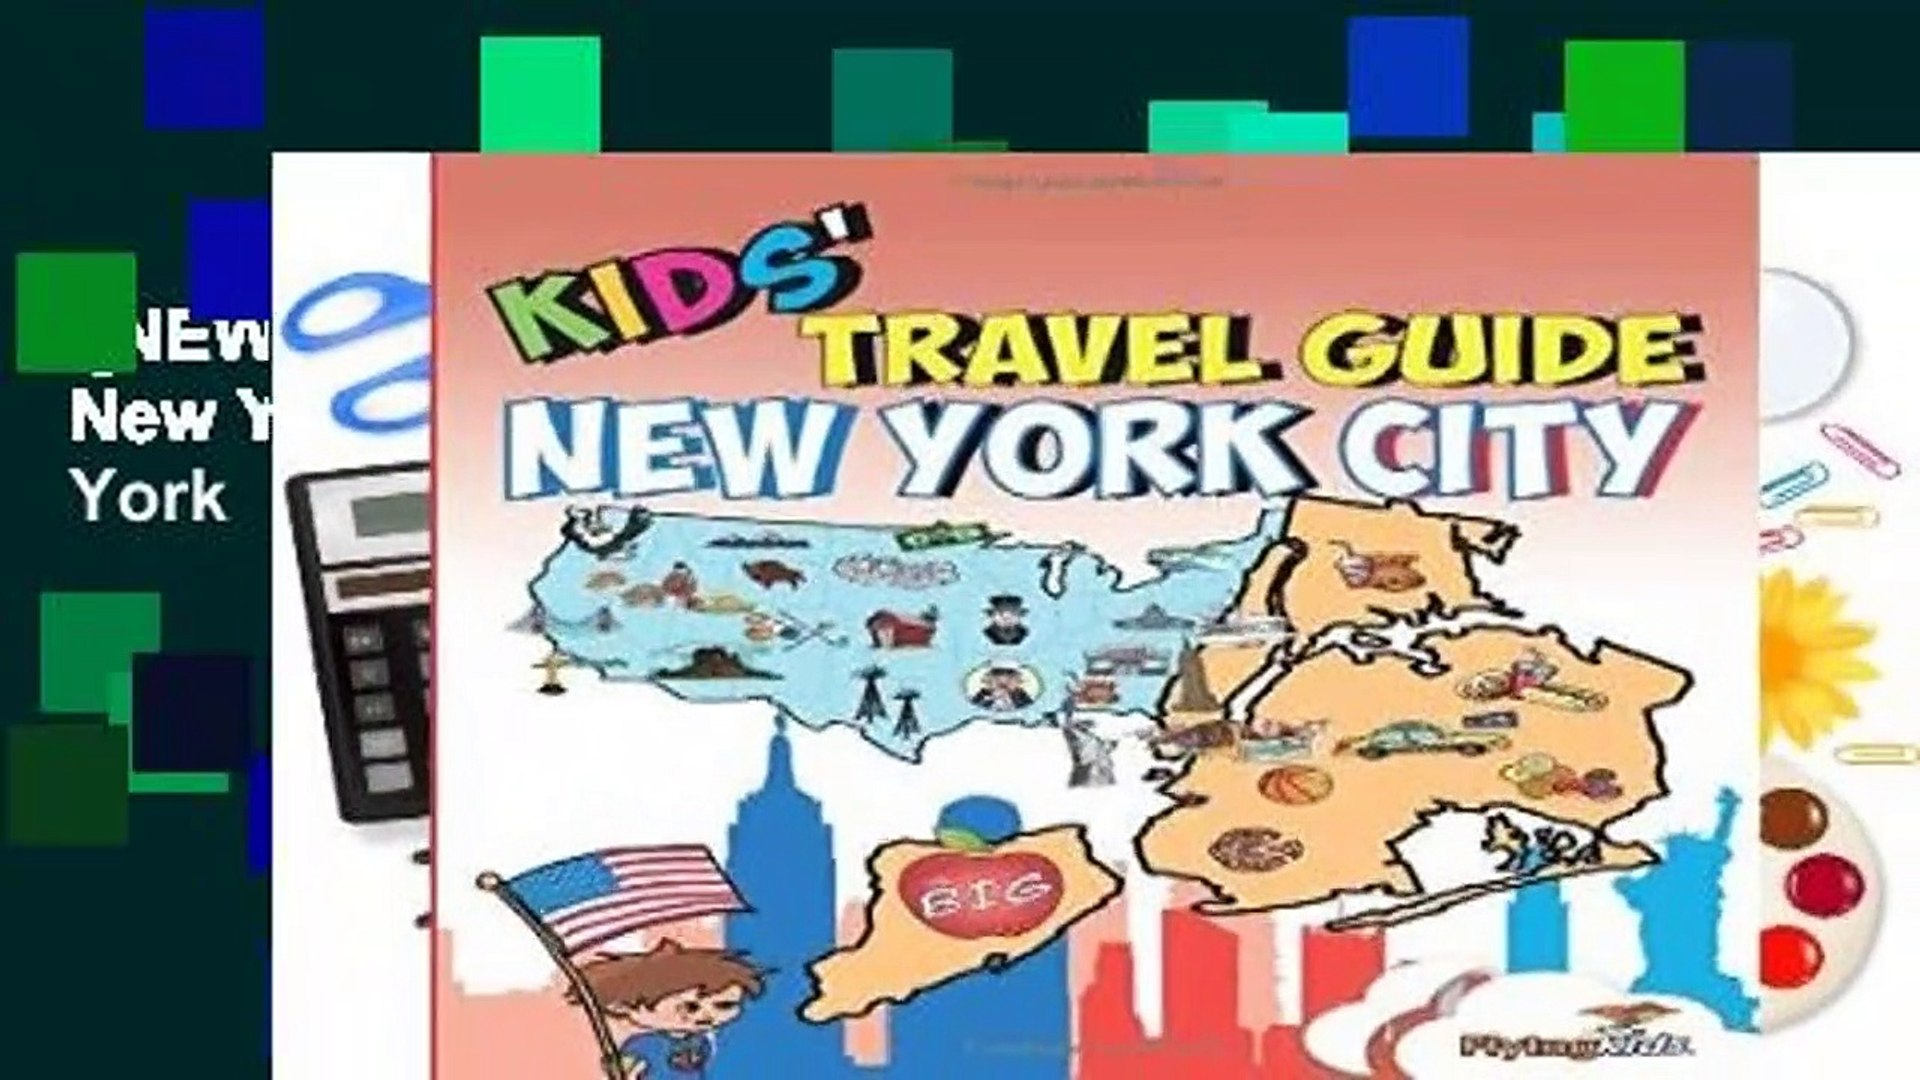 [NEW RELEASES]  Kids  Travel Guide - New York City: The fun way to discover New York